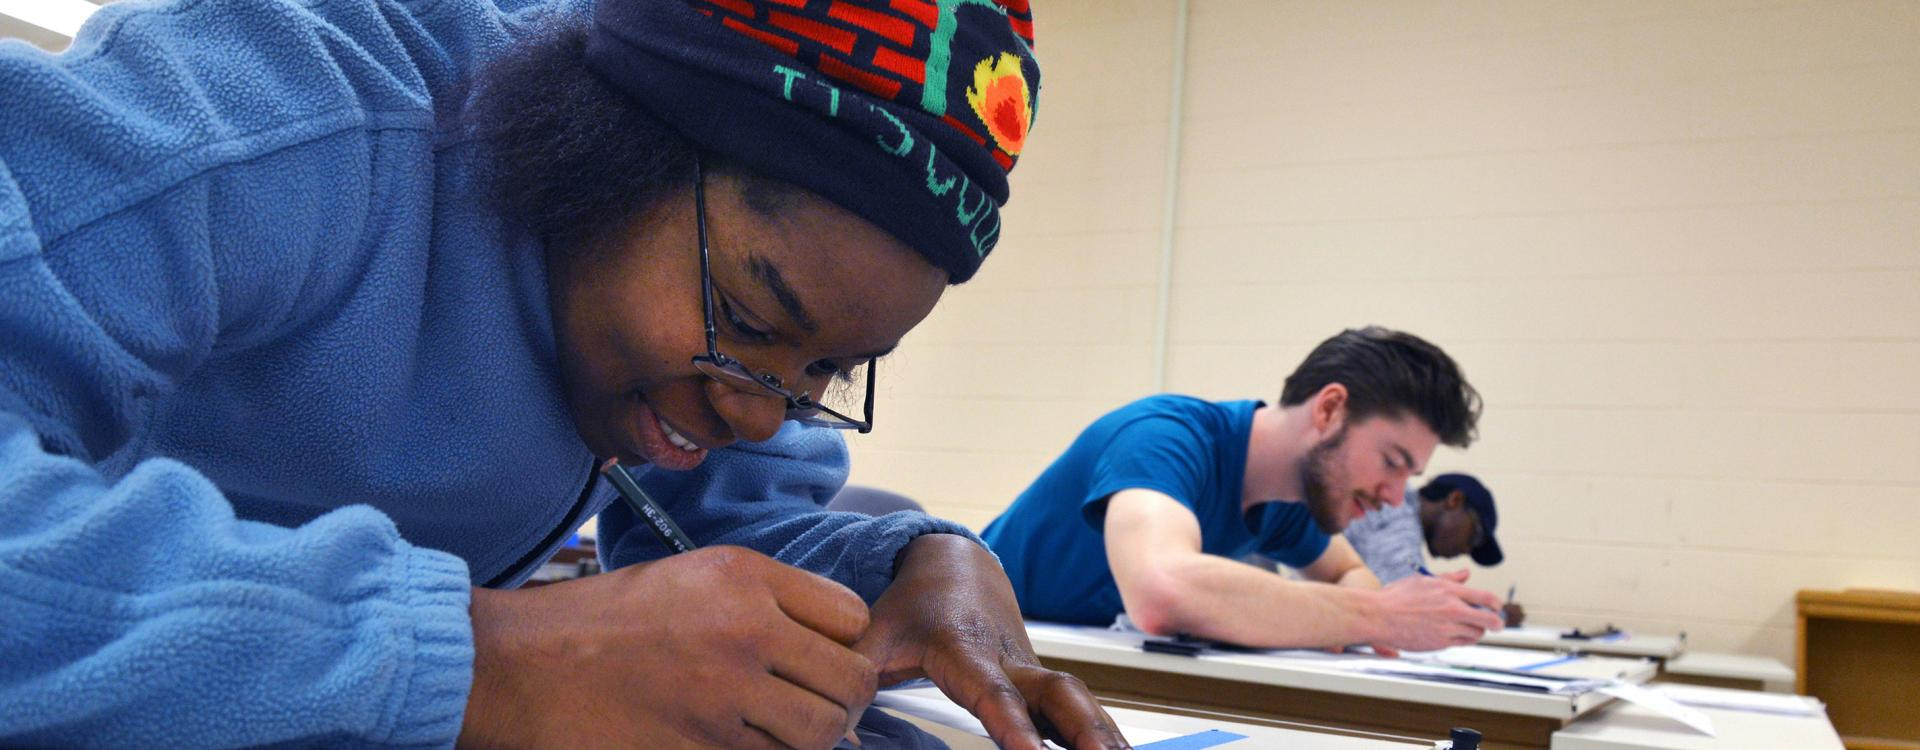 A Durham Tech student holds a pencil and focuses on work in a classroom